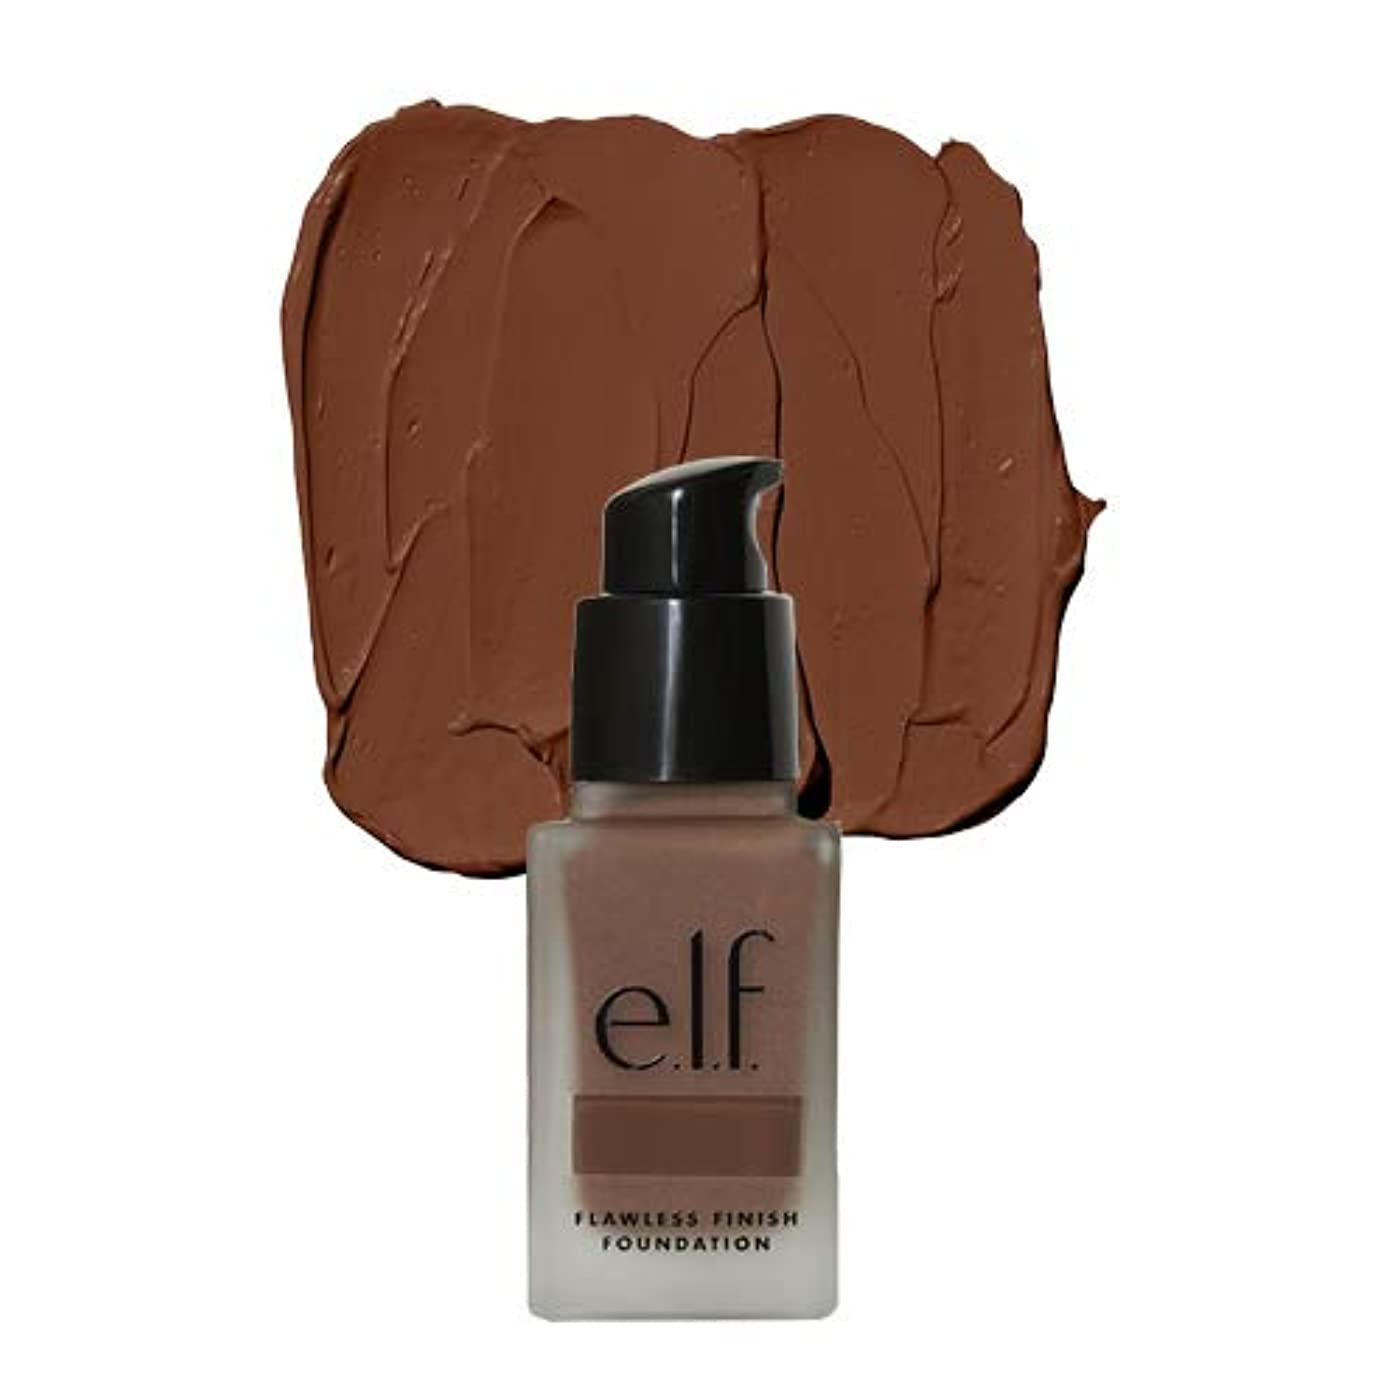 職業急降下変える(3 Pack) e.l.f. Oil Free Flawless Finish Foundation - Mocha (並行輸入品)